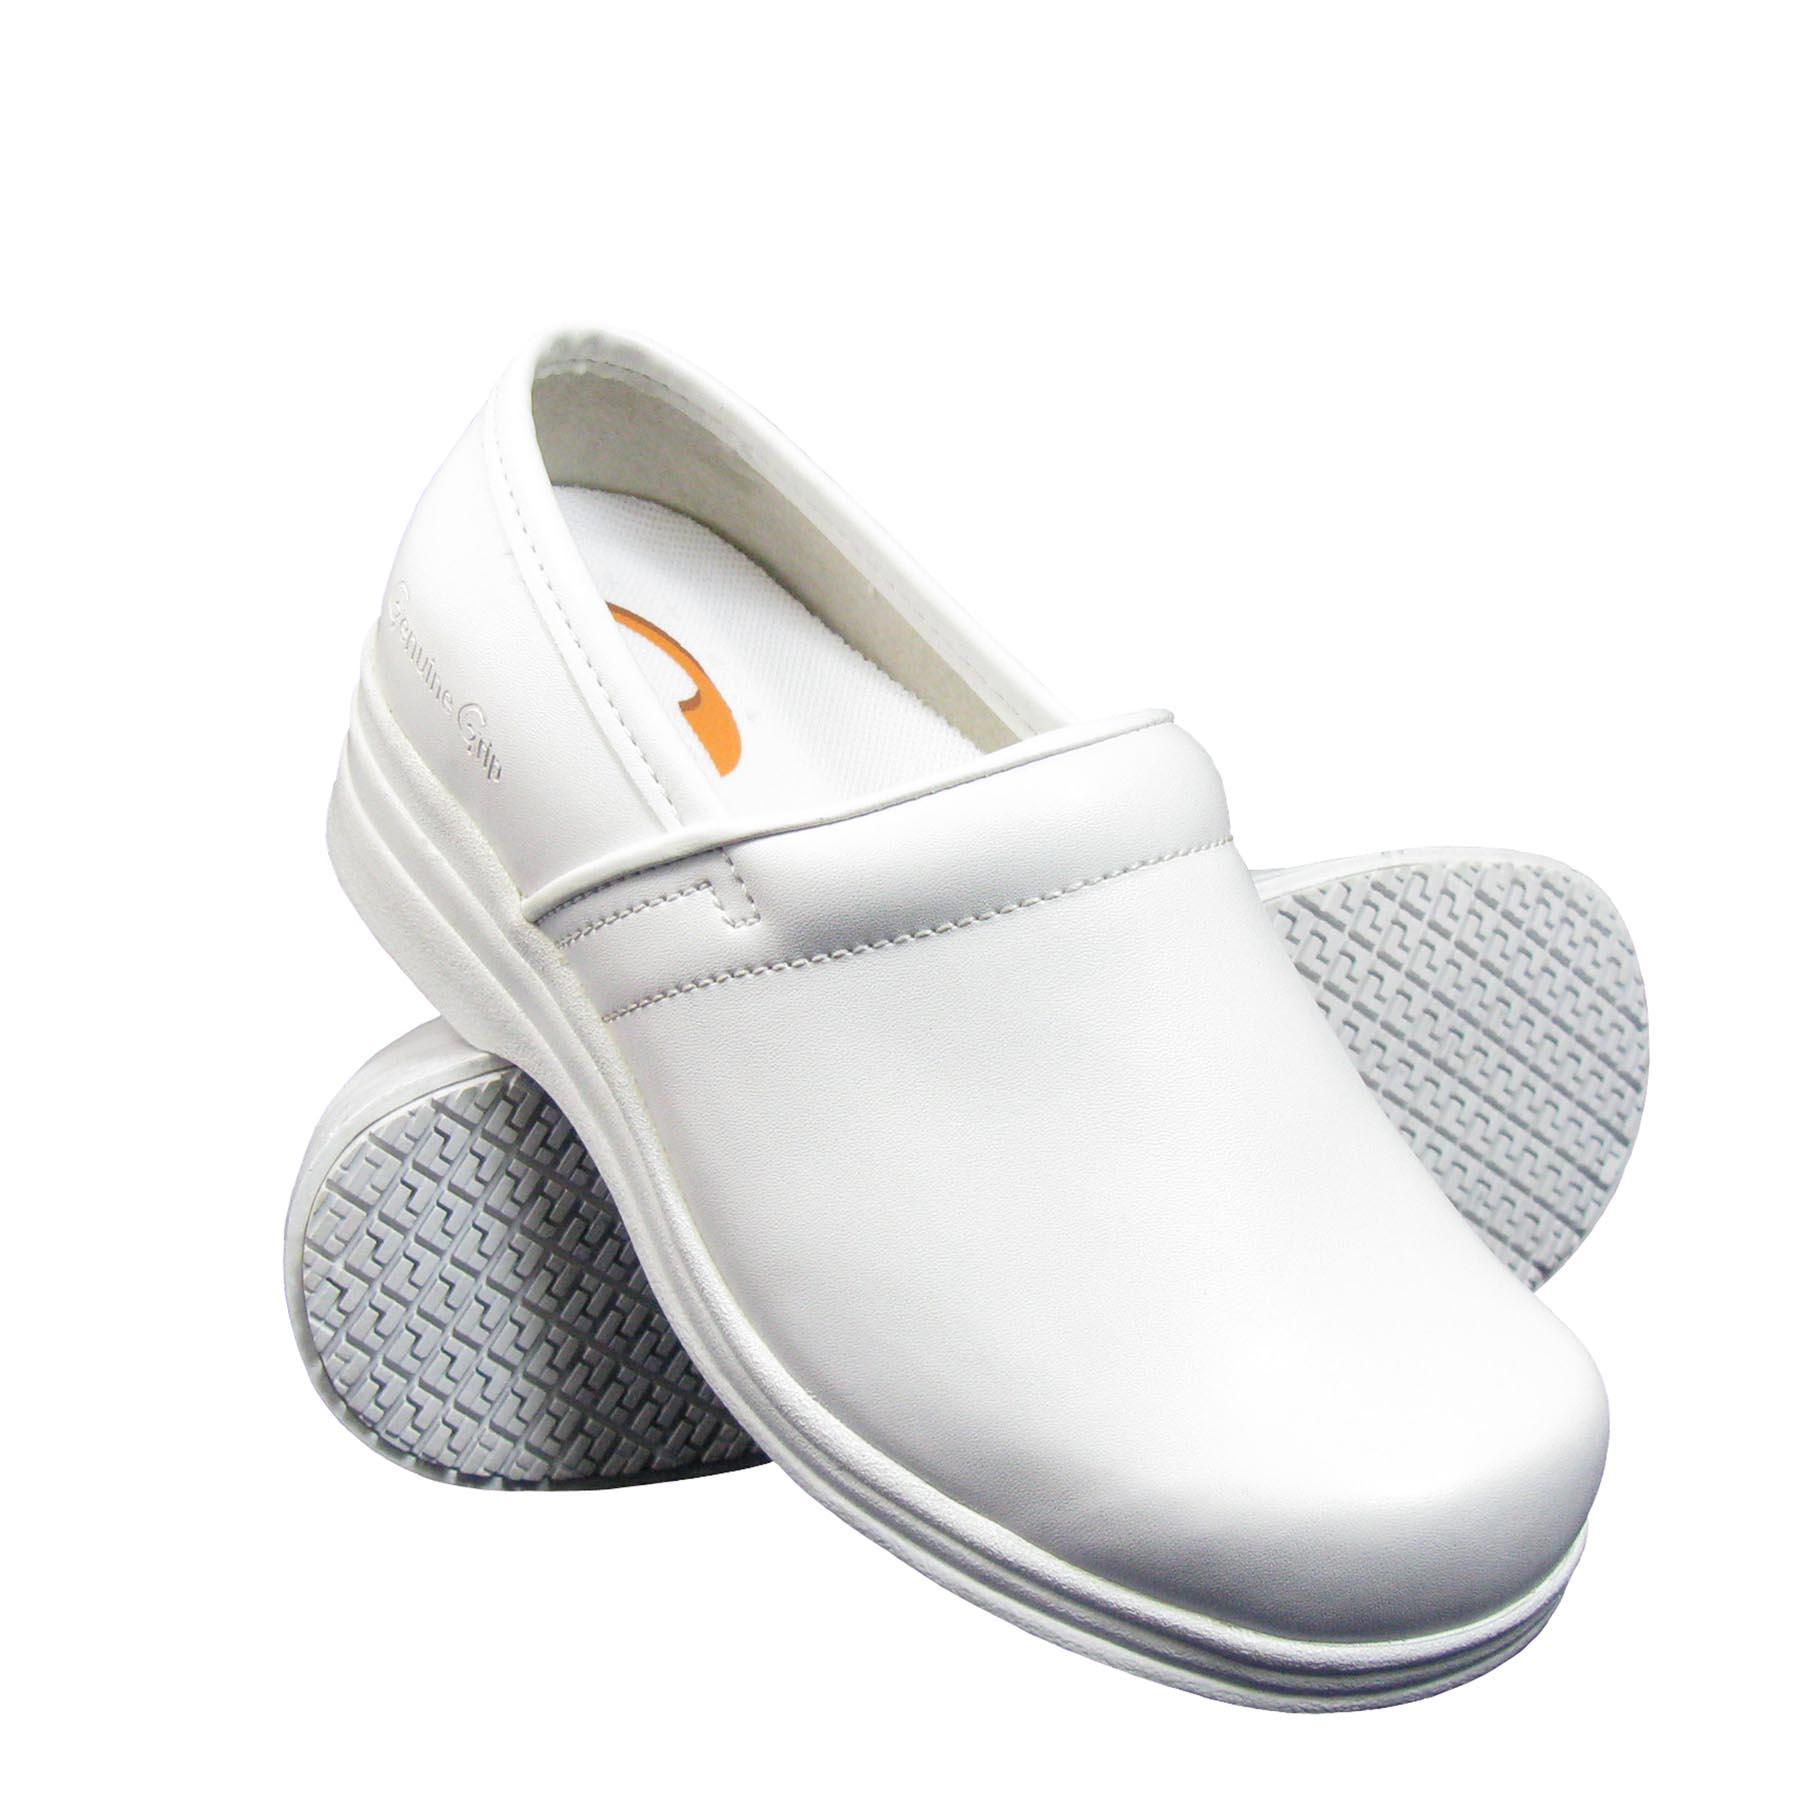 Women's Slip-Resistant Mule Casual Shoes